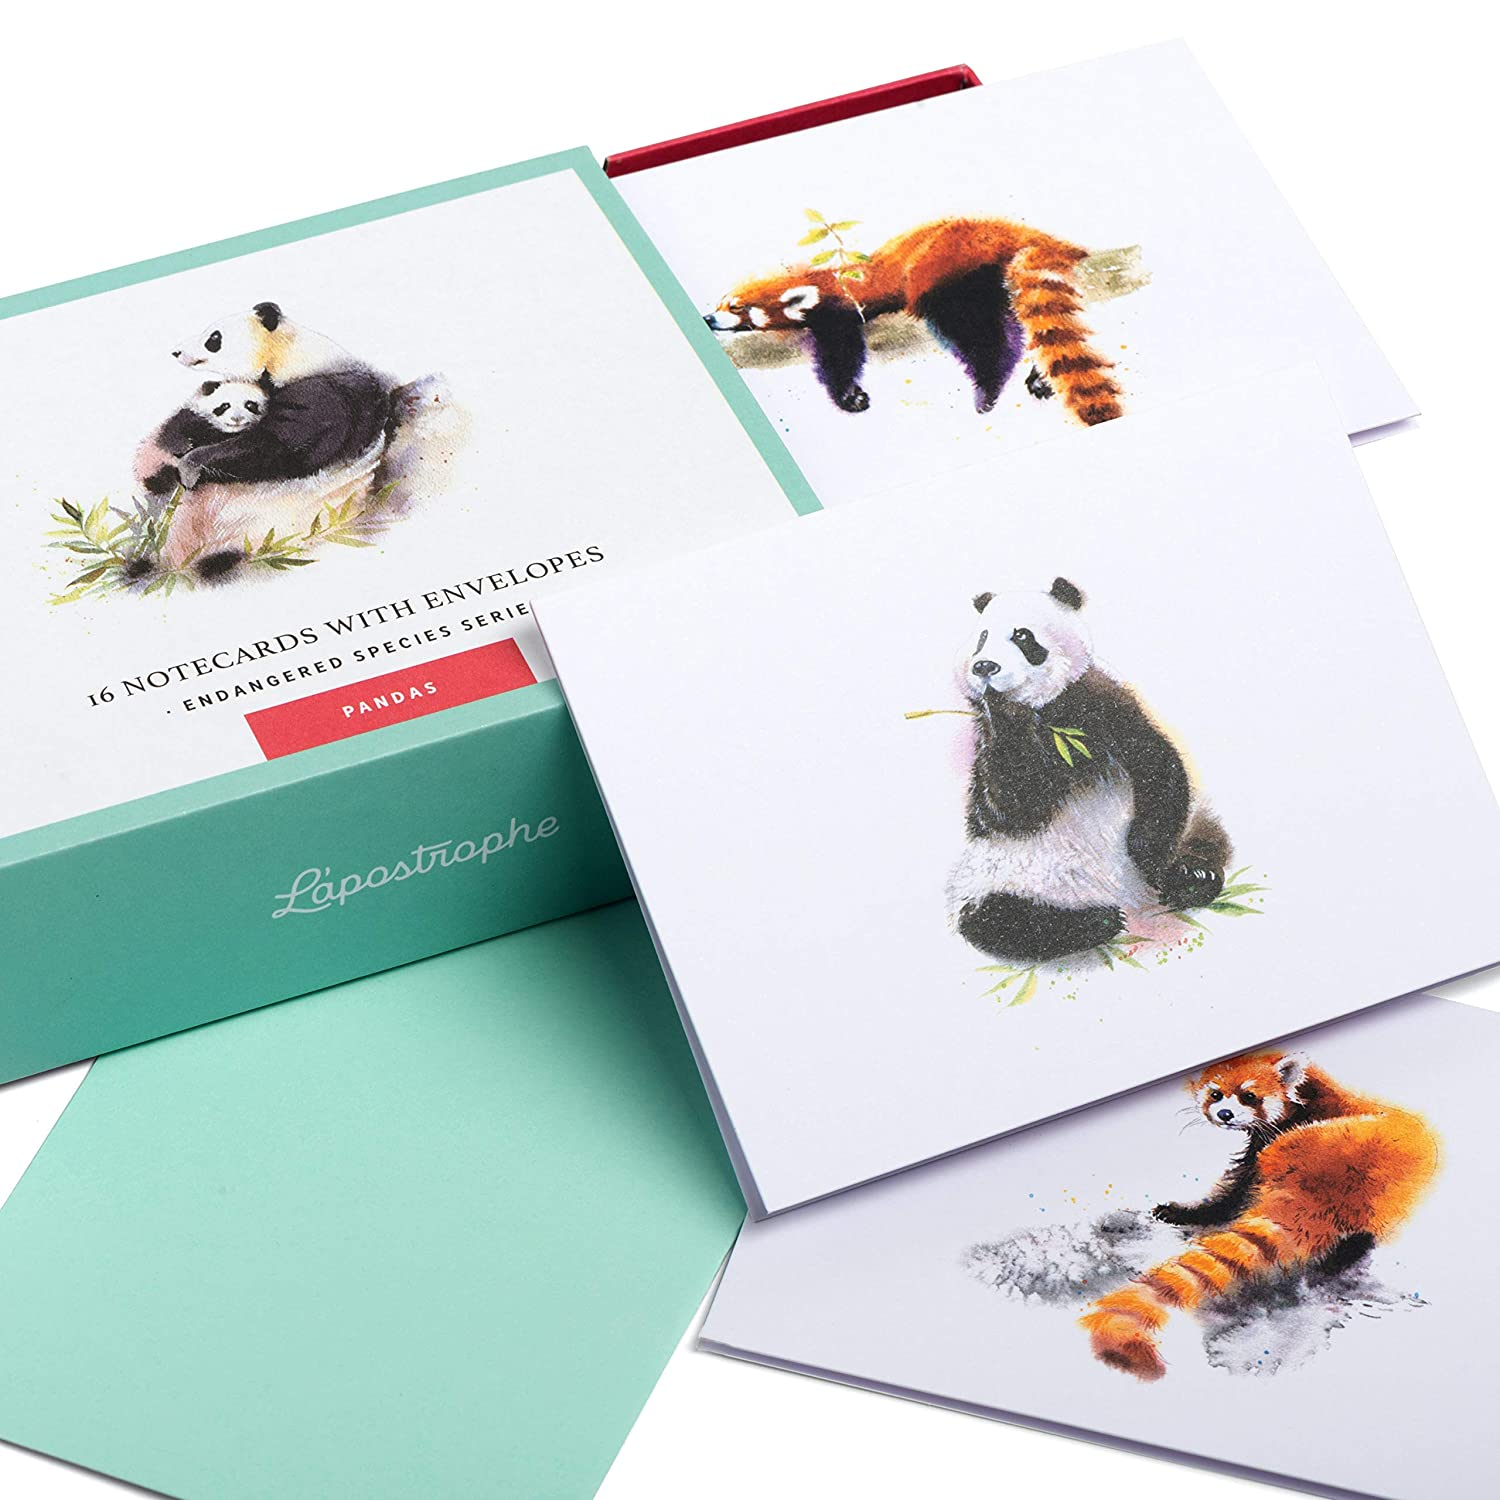 24. Panda Blank Note Cards with Envelopes